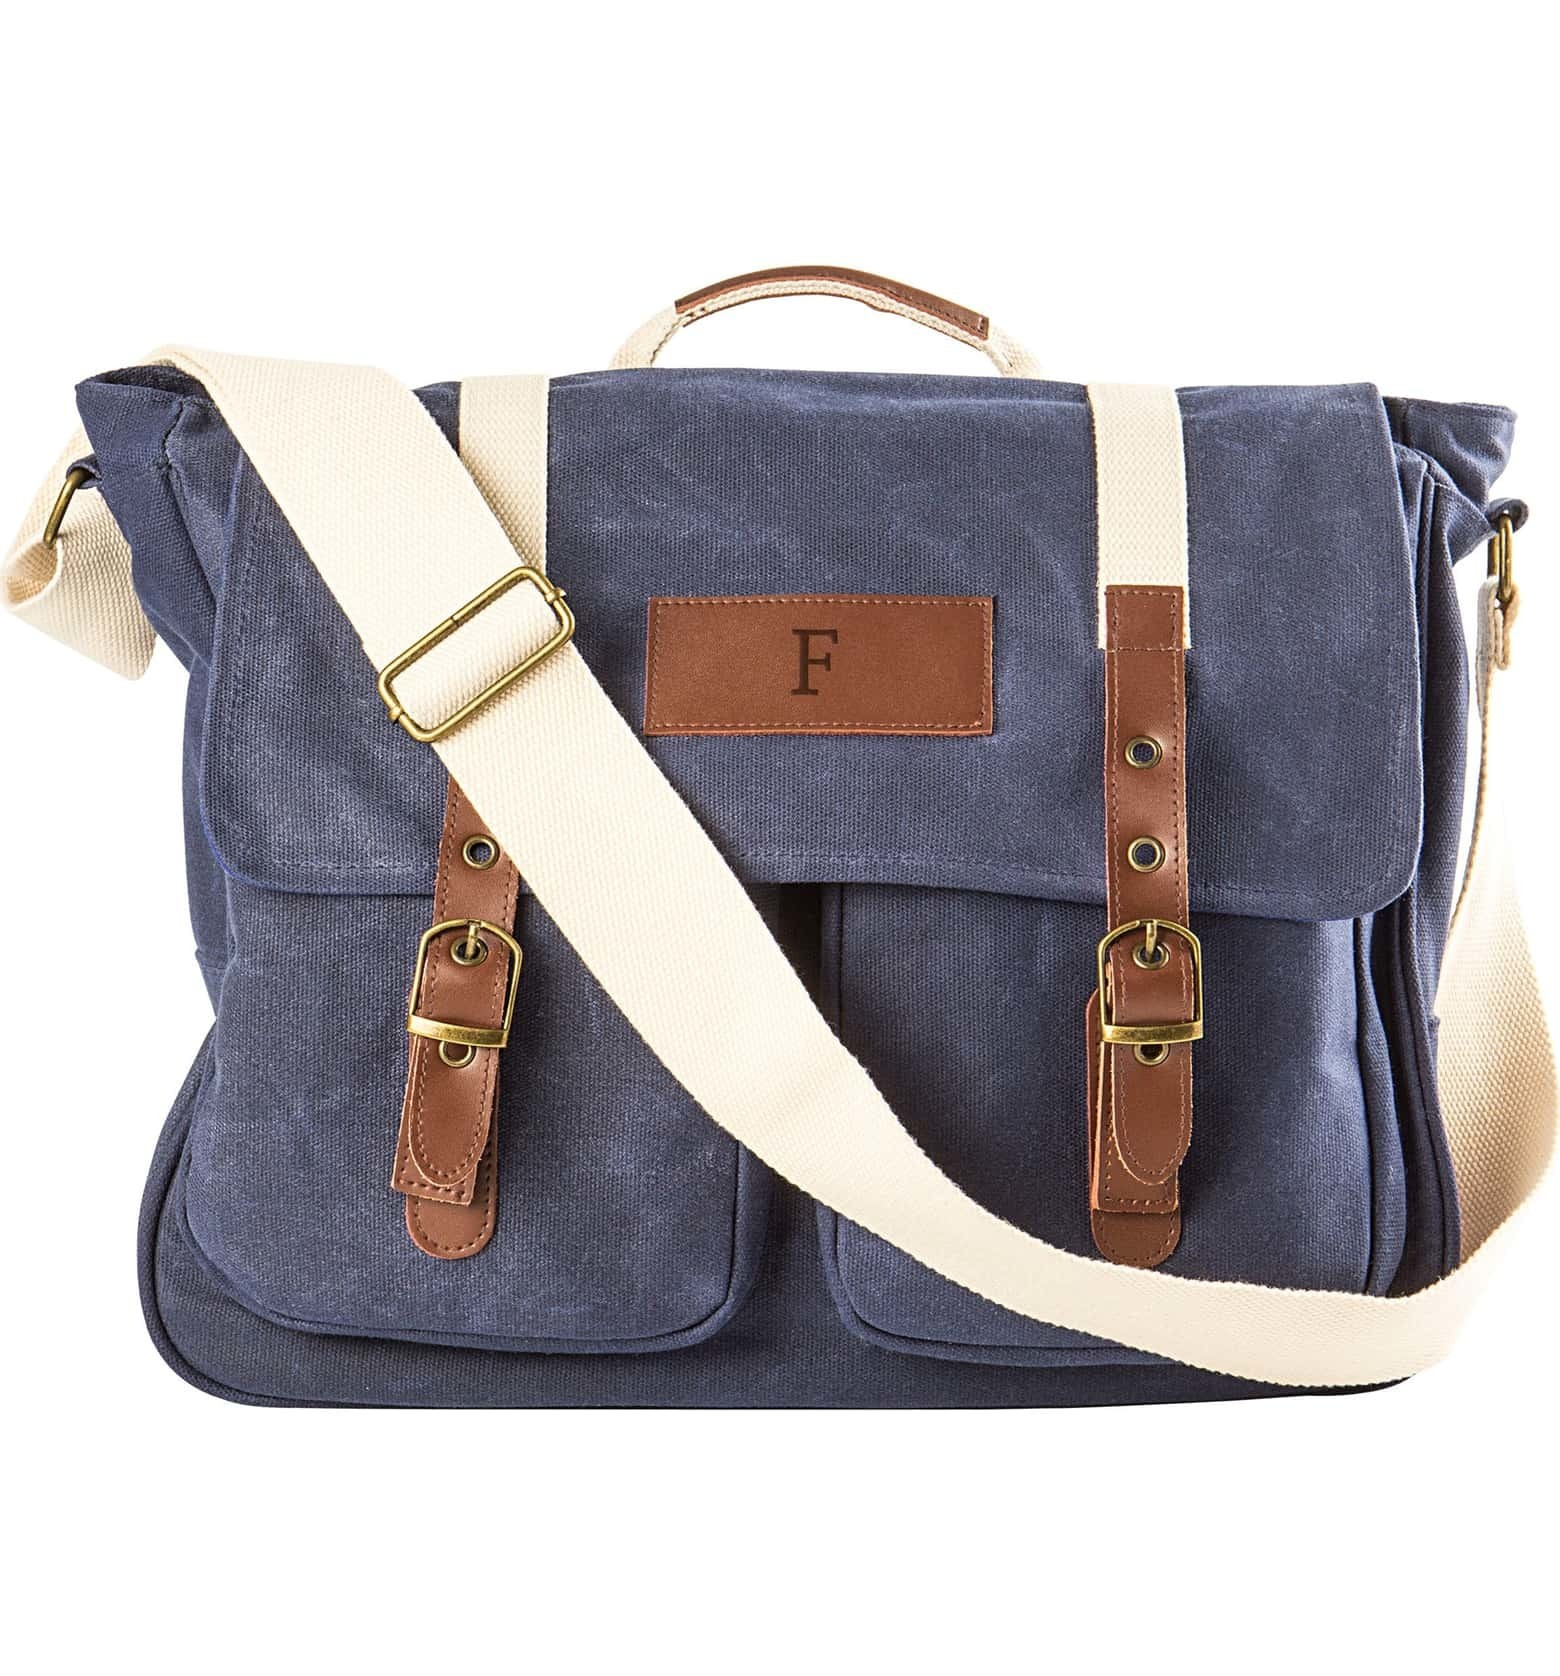 kWomen's Messenger Bags That Are Perfect For School And Work